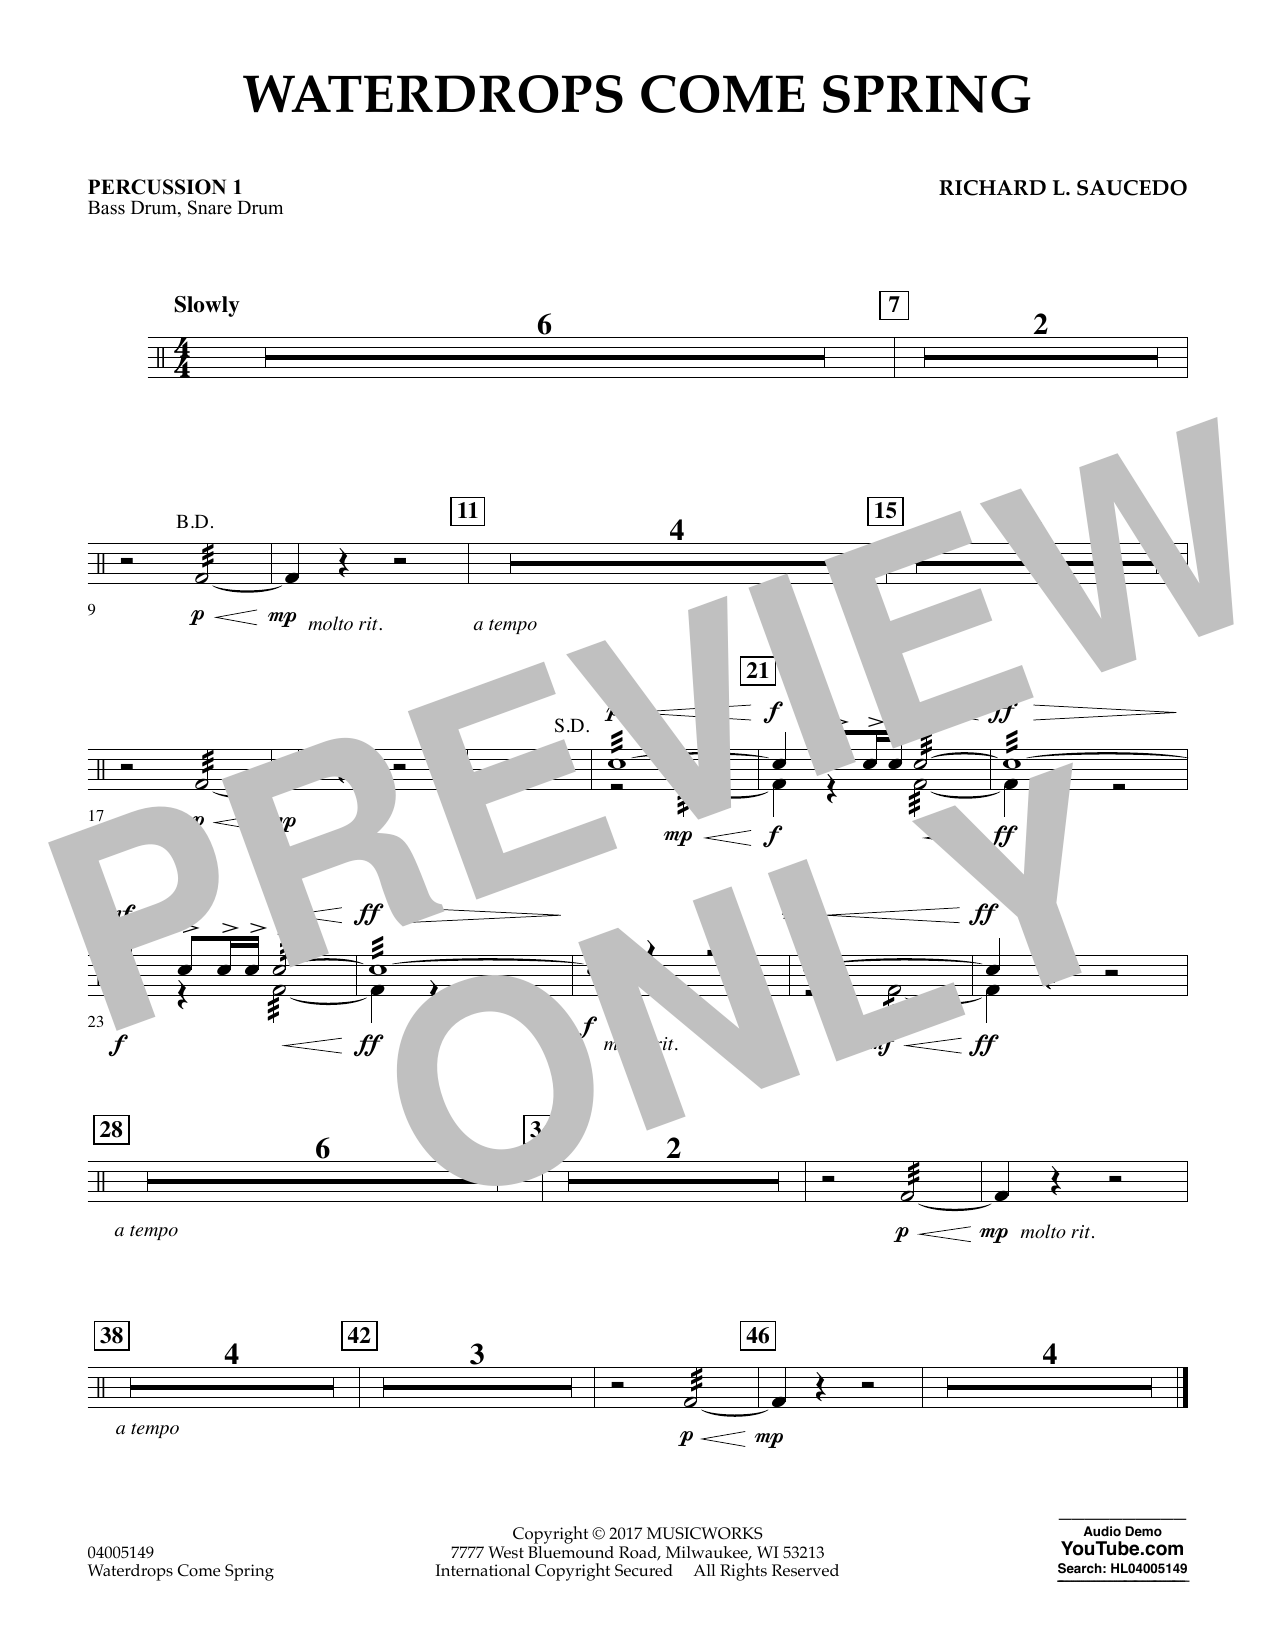 Richard L. Saucedo Waterdrops Come Spring - Percussion 1 sheet music notes and chords. Download Printable PDF.